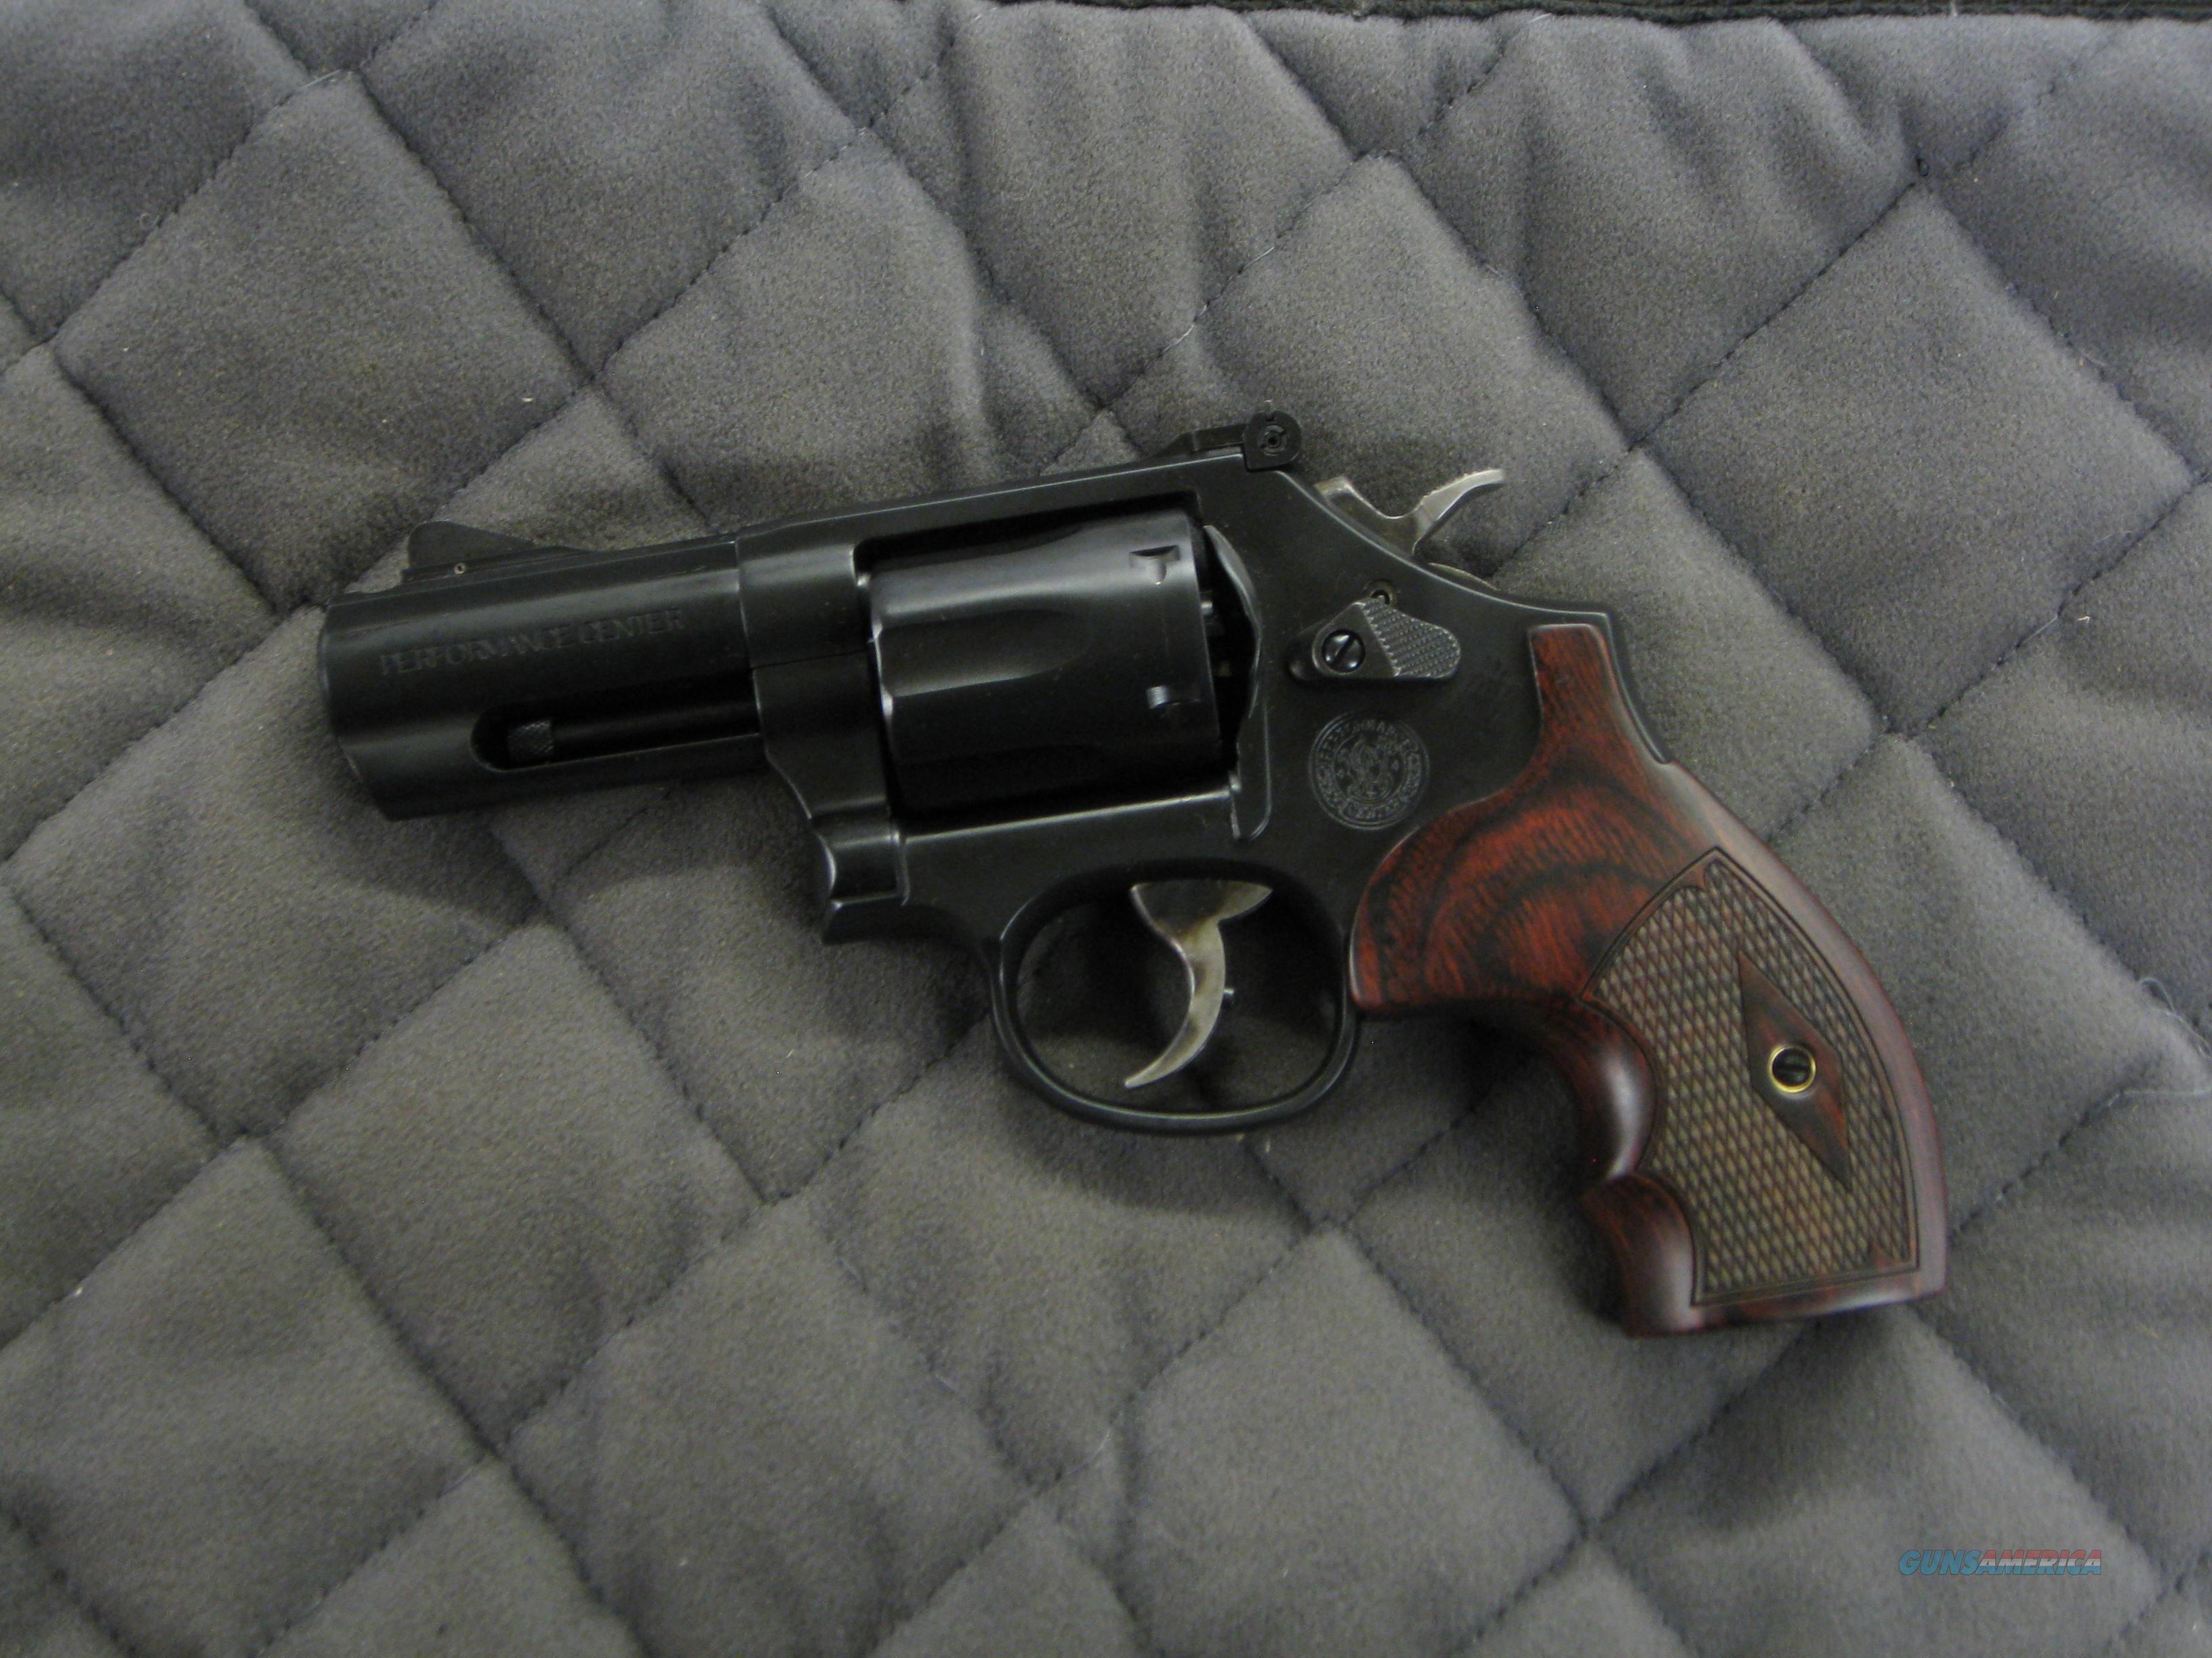 Smith And Wesson 12039 Unboxing: Smith & Wesson Model 19 Carry Comp NEW 12039 For Sale